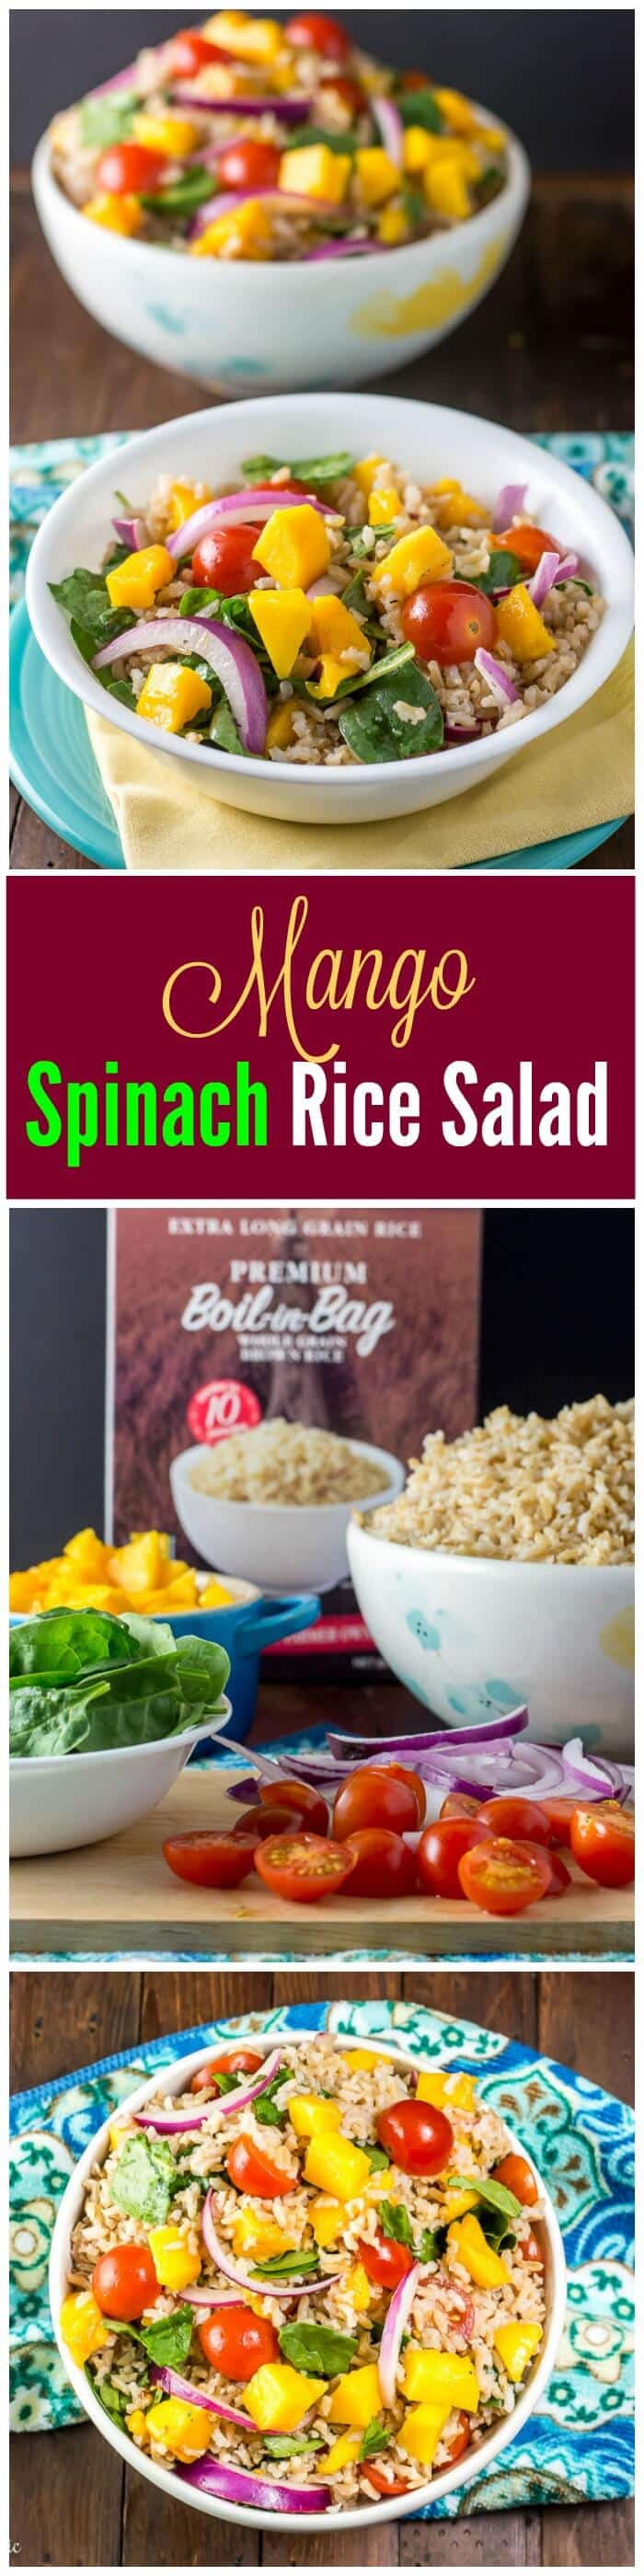 Mango Spinach Rice Salad is a delicious side dish.